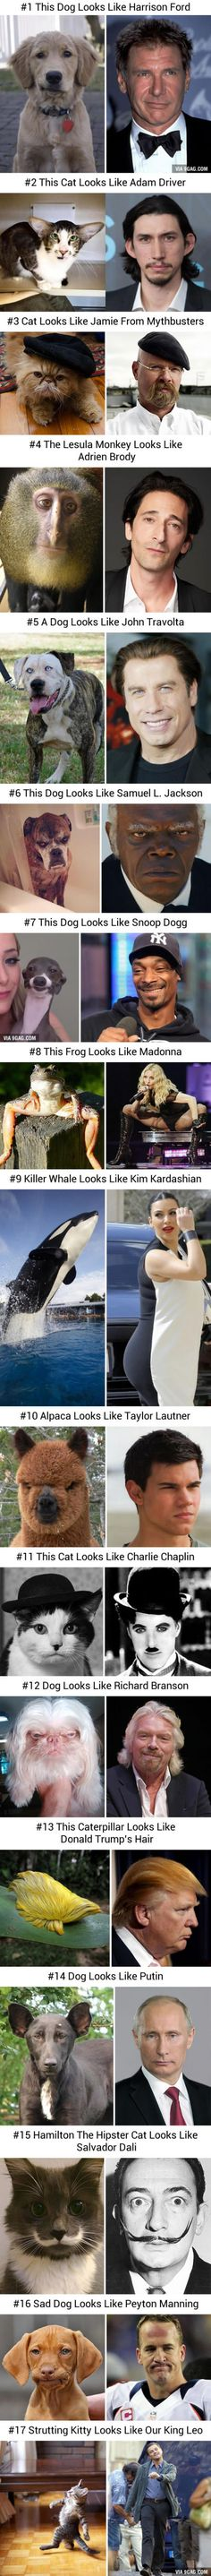 17 Best Look Like Pictures you ever seen: Animals vs Celebrities and Famous People - funny photo hilarious Funny Animal Pictures, Funny Photos, Funny Animals, Cute Animals, Funny Cute, The Funny, Animal Memes, Make You Smile, Laugh Out Loud